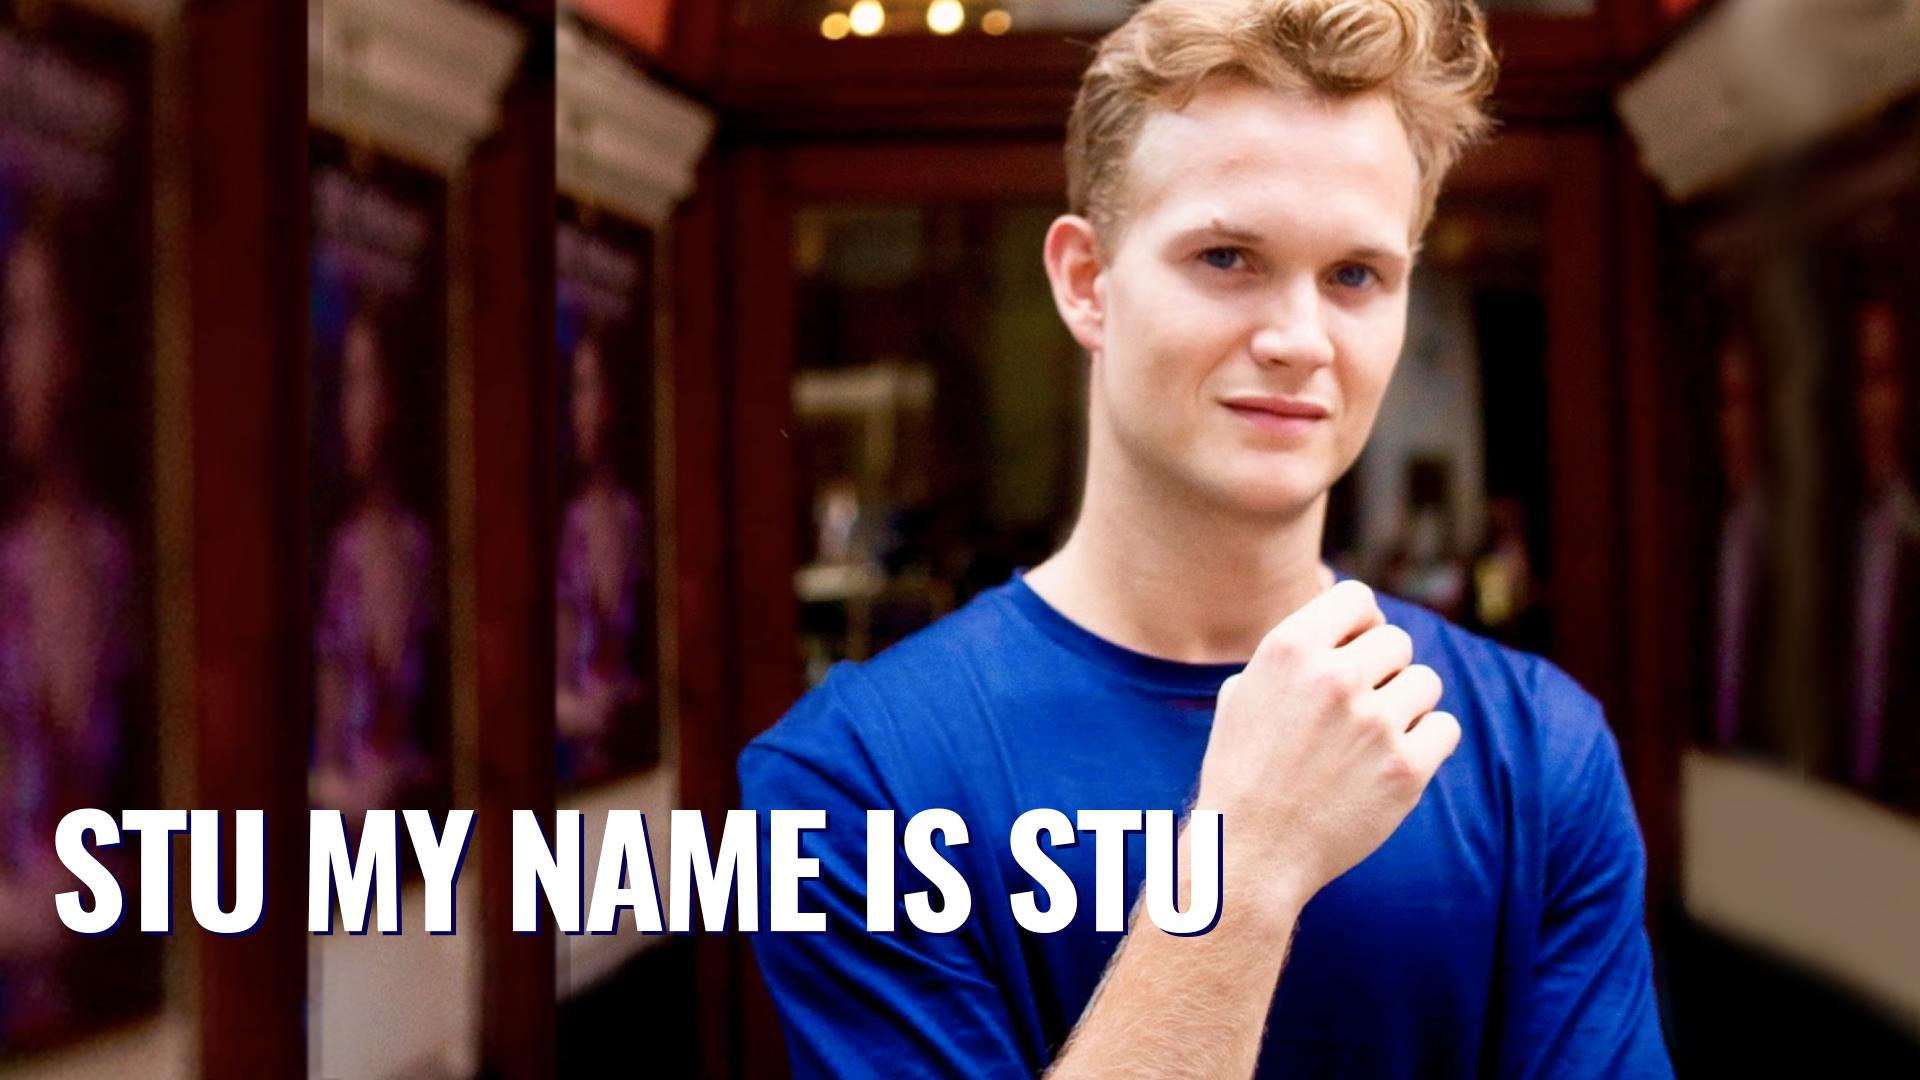 STU, MY NAME IS STU